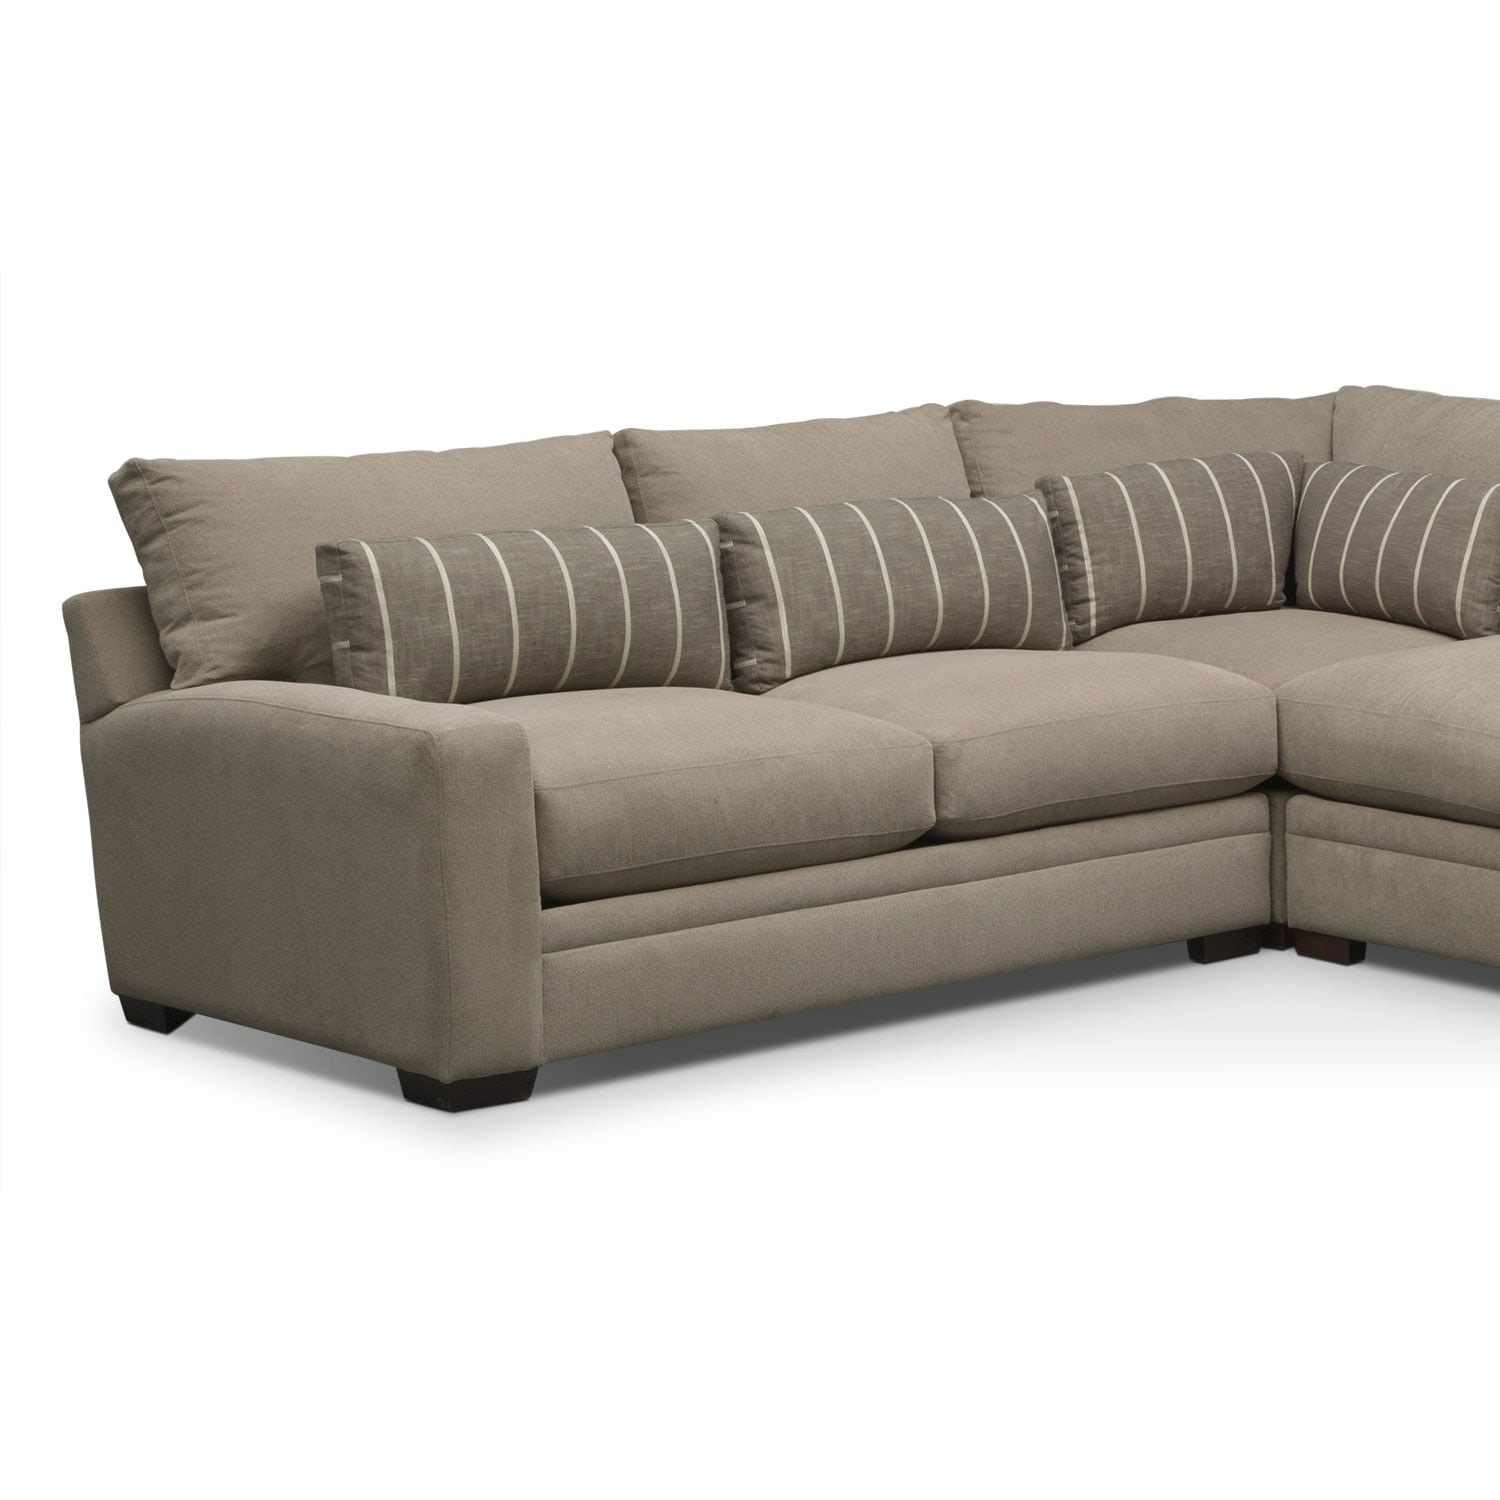 click to change image - Kroehler Furniture